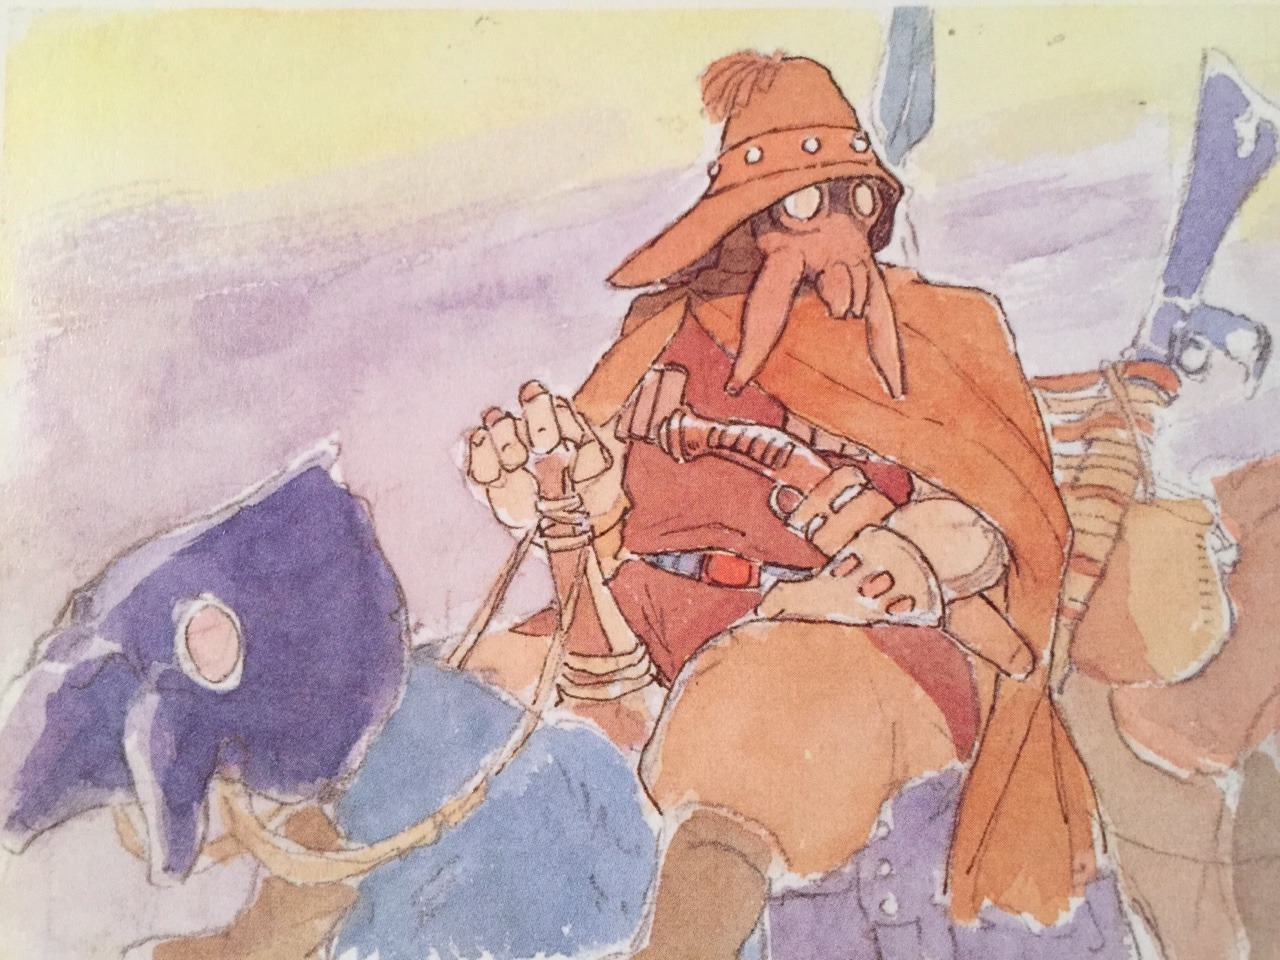 Lord-Yupa-The-Art-Of-Nausica-Of-The-Valley-Of-The-Wind-Watercolor-Impressions-Hayao-Miyazaki-nausicaa-of-the-valley-of-the-wind-40590576-1280-960.jpg